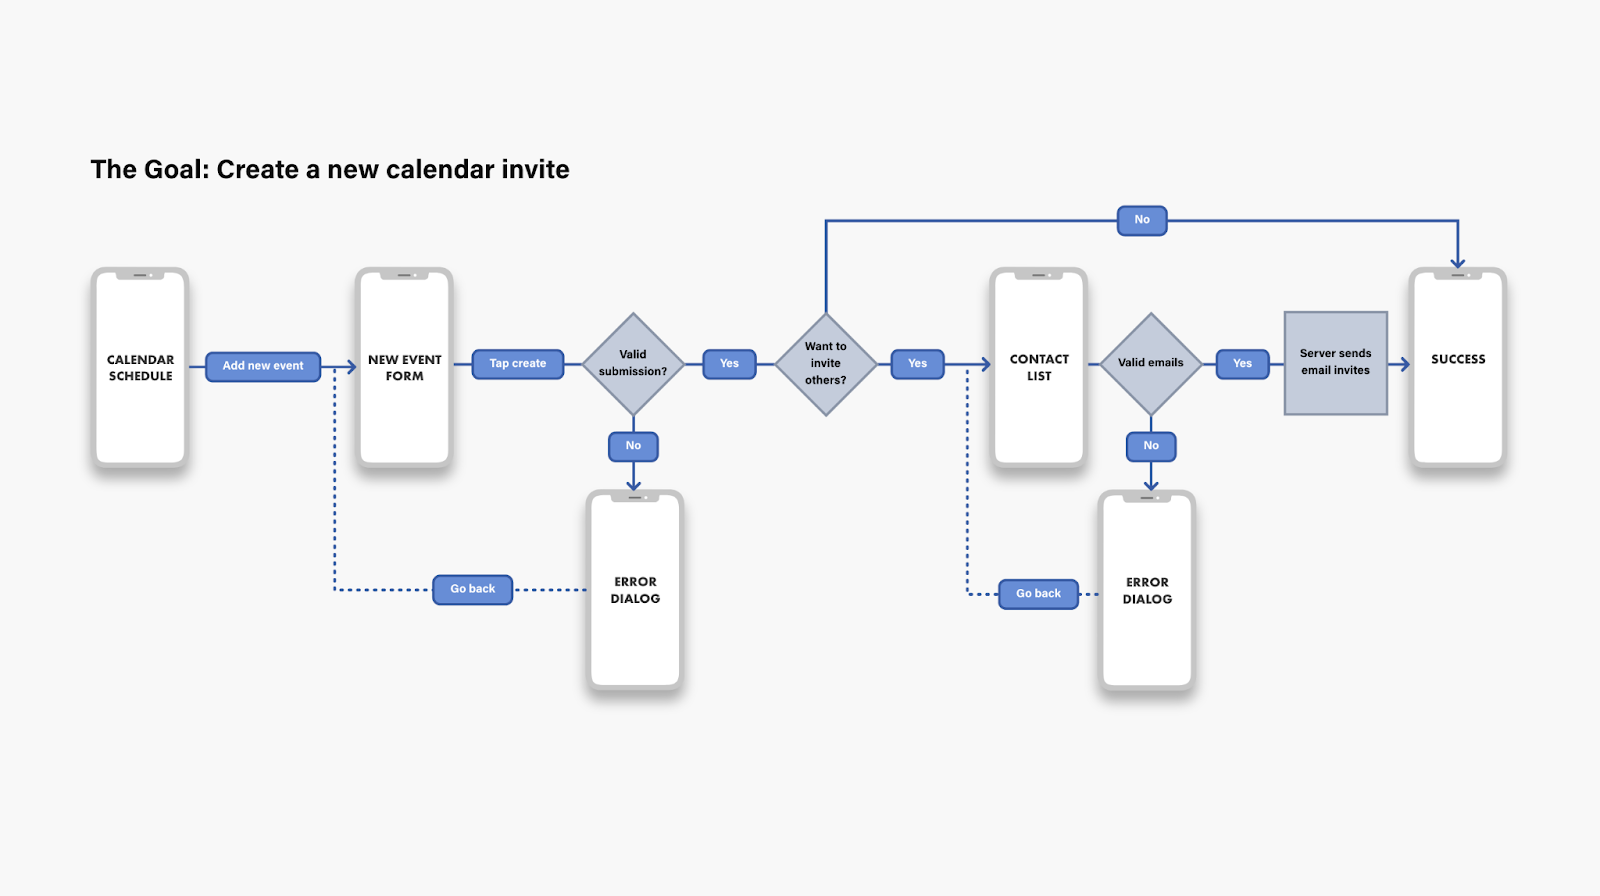 Using symbols and other components to indicate decision paths and system logic in a UX flowchart.